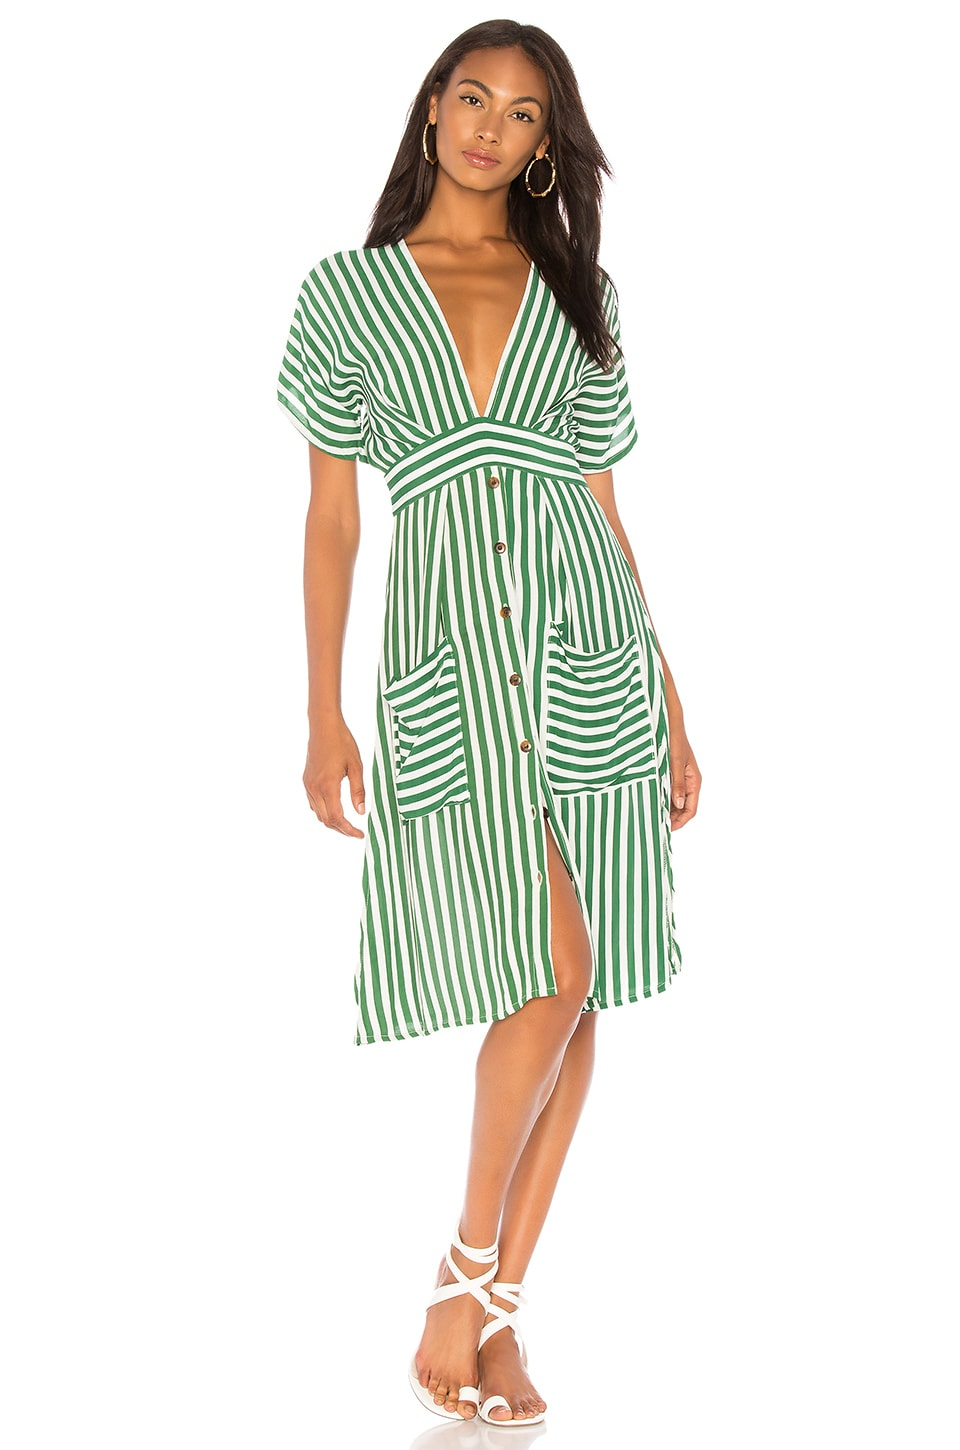 FAITHFULL THE BRAND Milan Midi Dress in Green